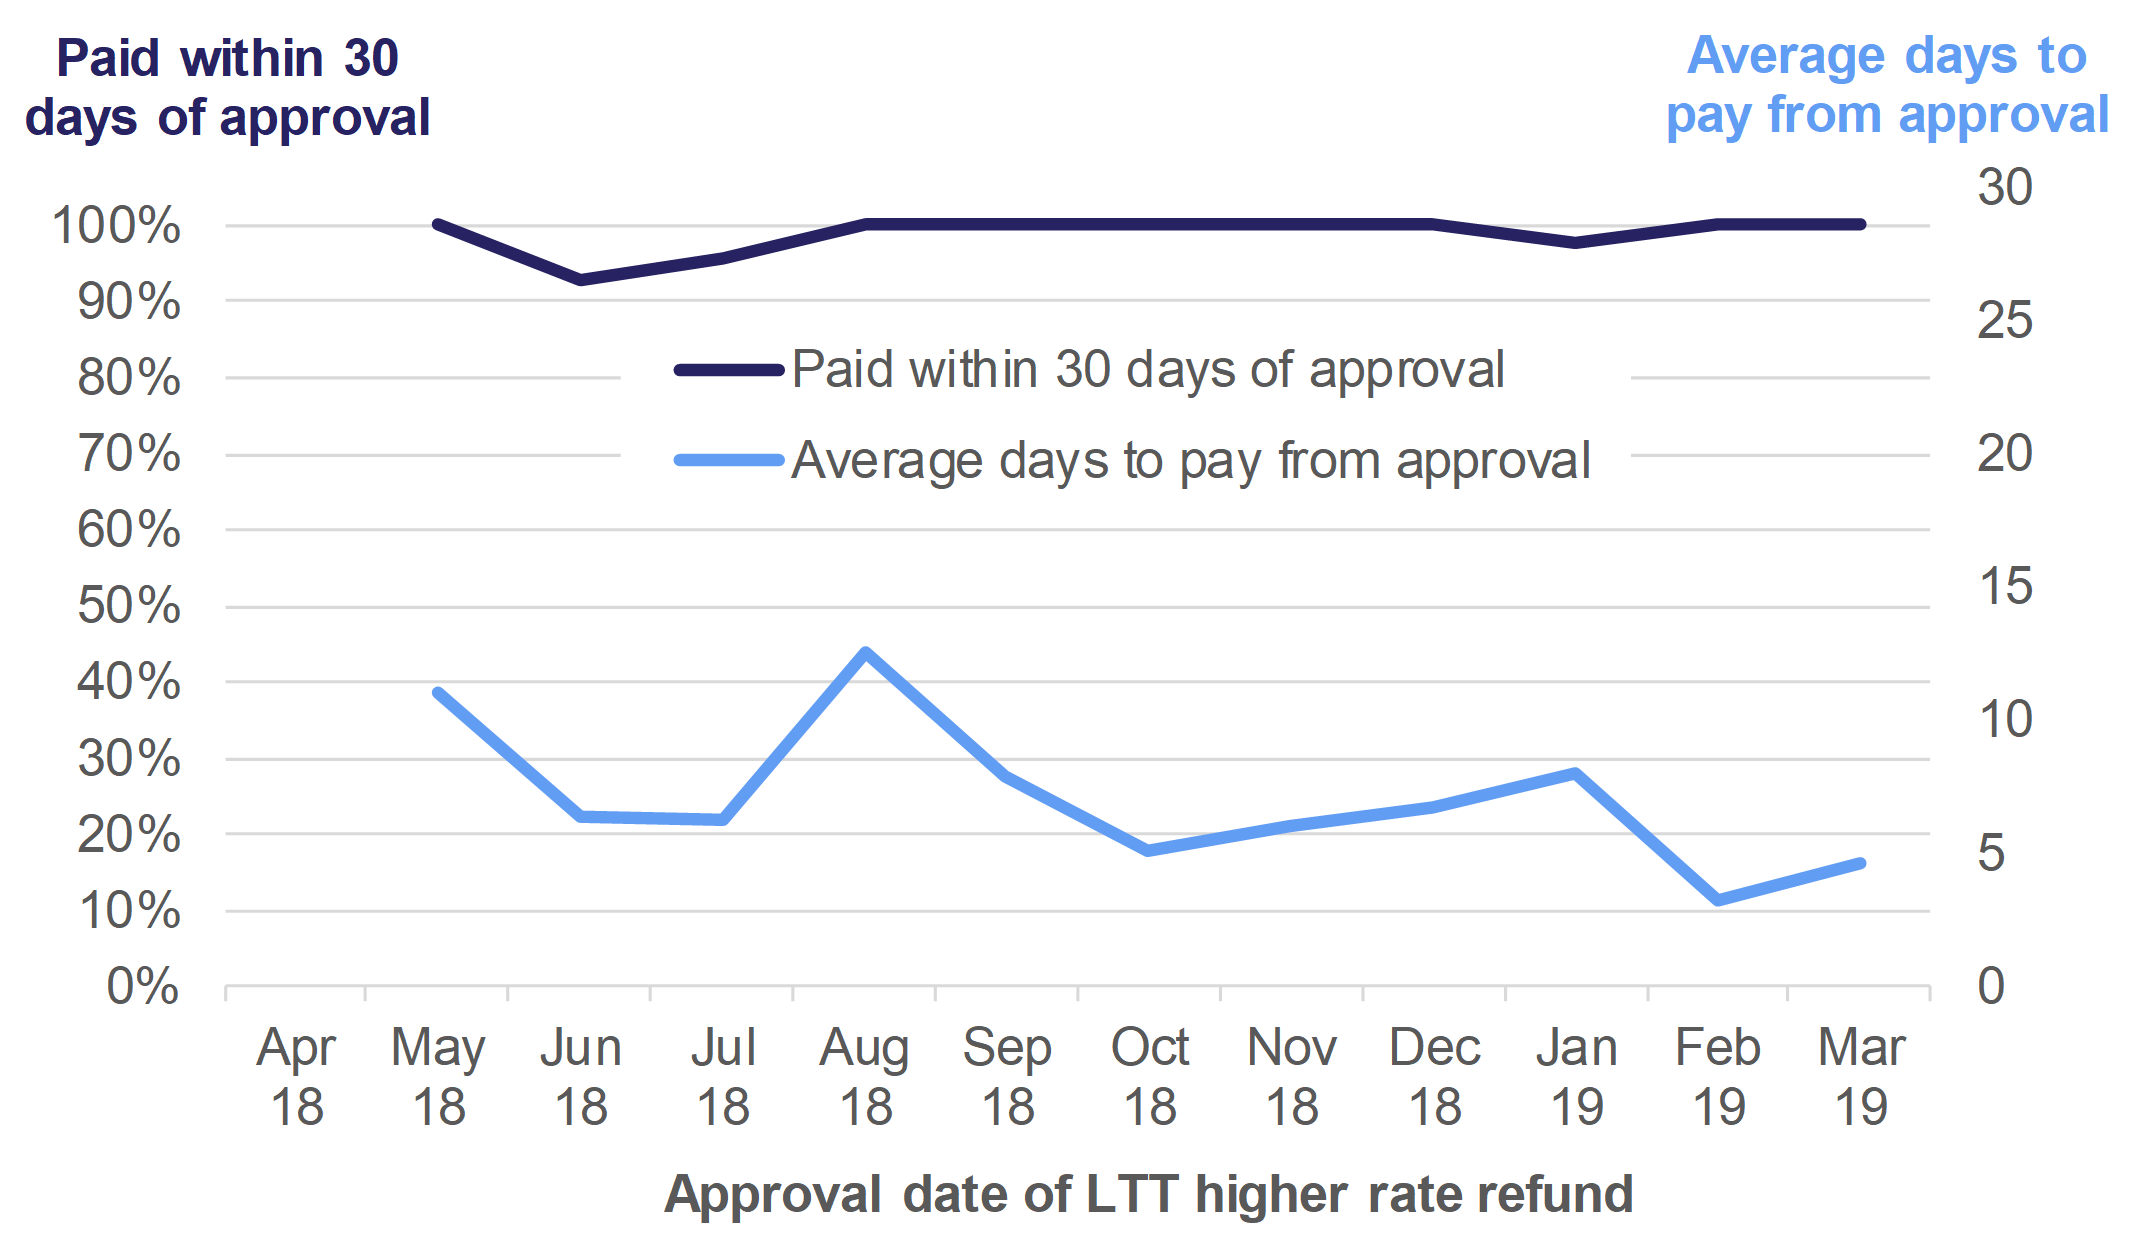 Figure 10.6 shows the percentage of LTT higher rate refunds paid within 30 days of approval, and the average days to pay from approval. Data is shown by the month when the LTT higher rate refund was approved, for April 2018 to March 2019.